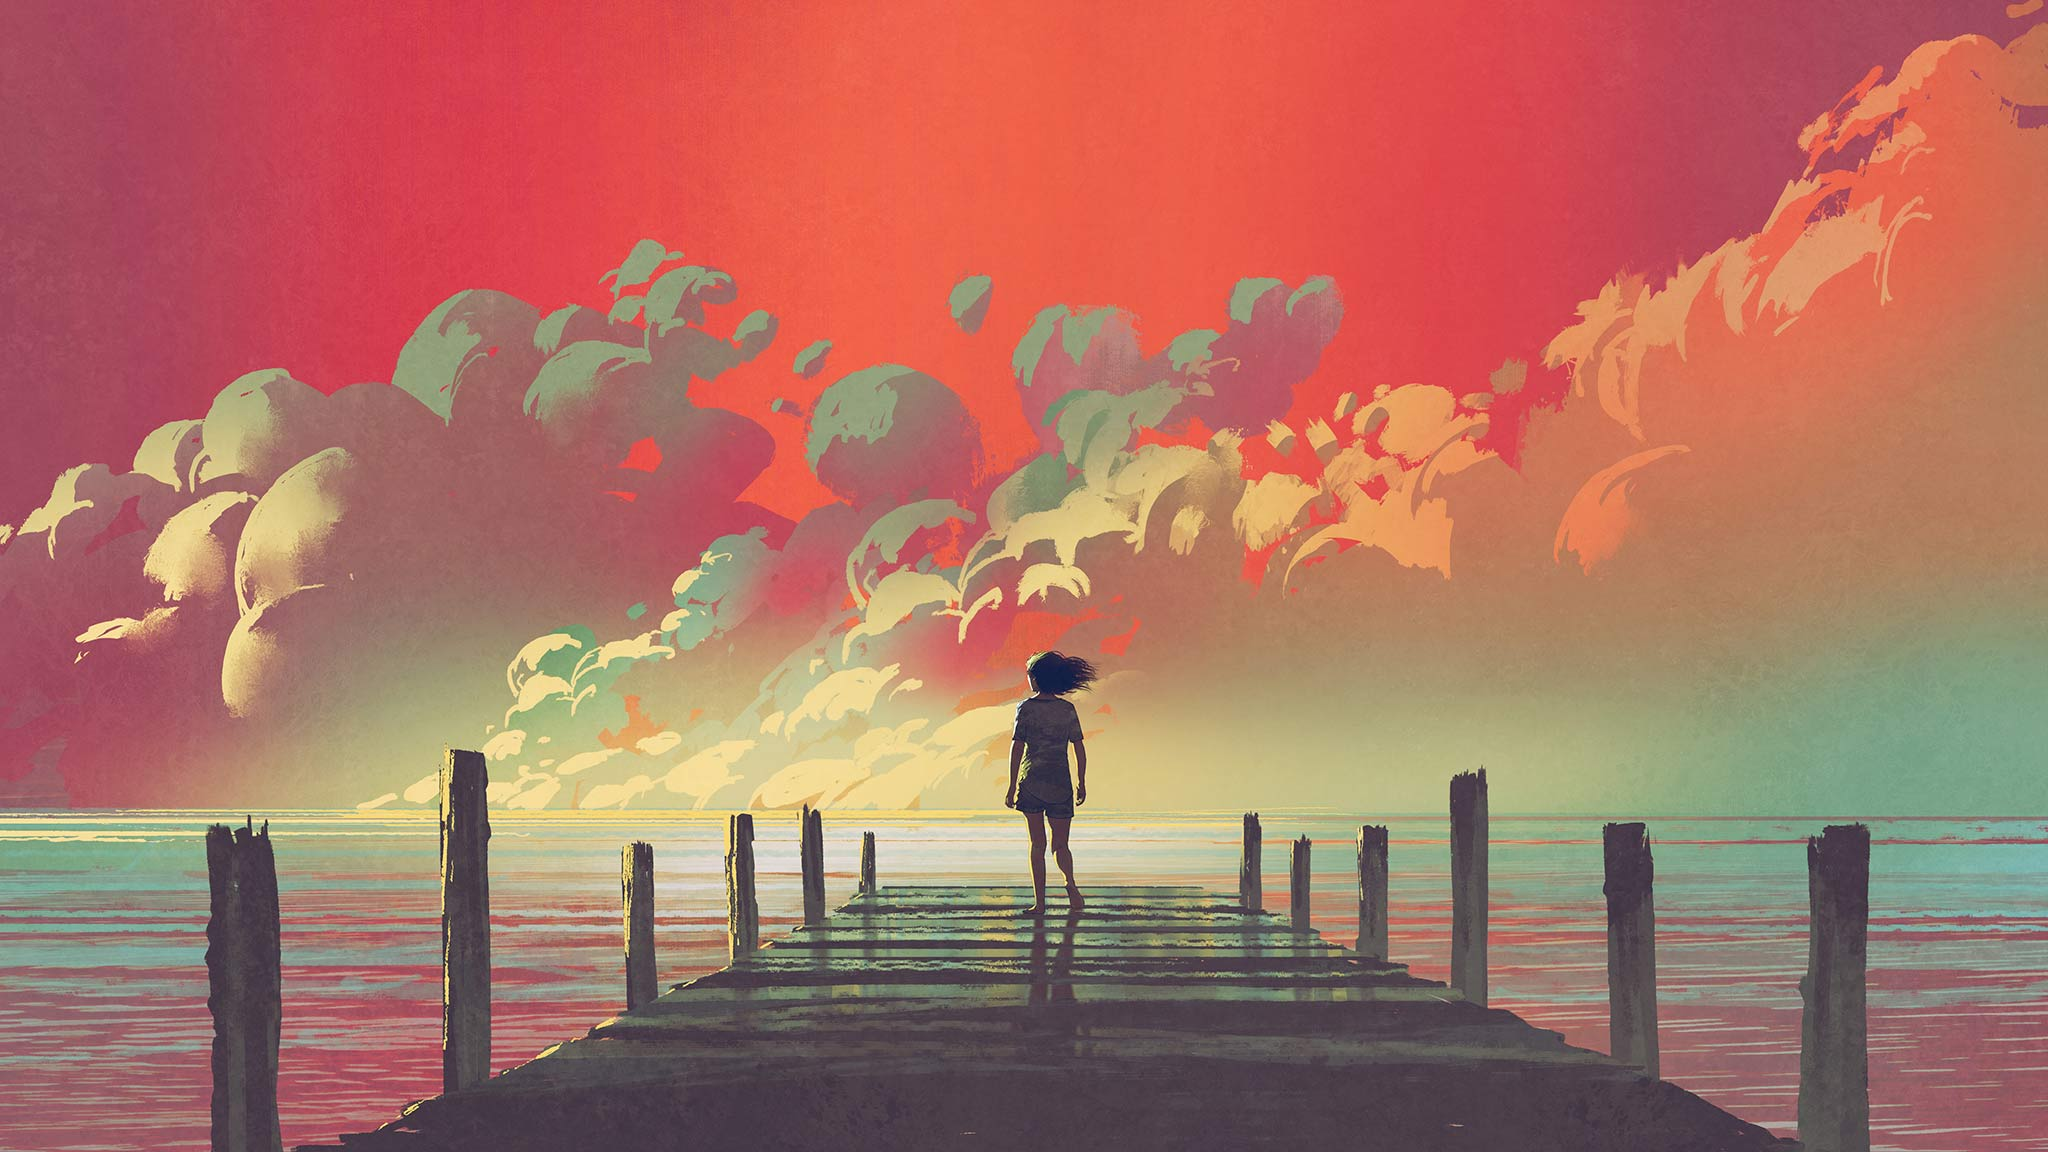 Painting Of Young Woman Standing Alone On The Edge Of A Dock During Sunset